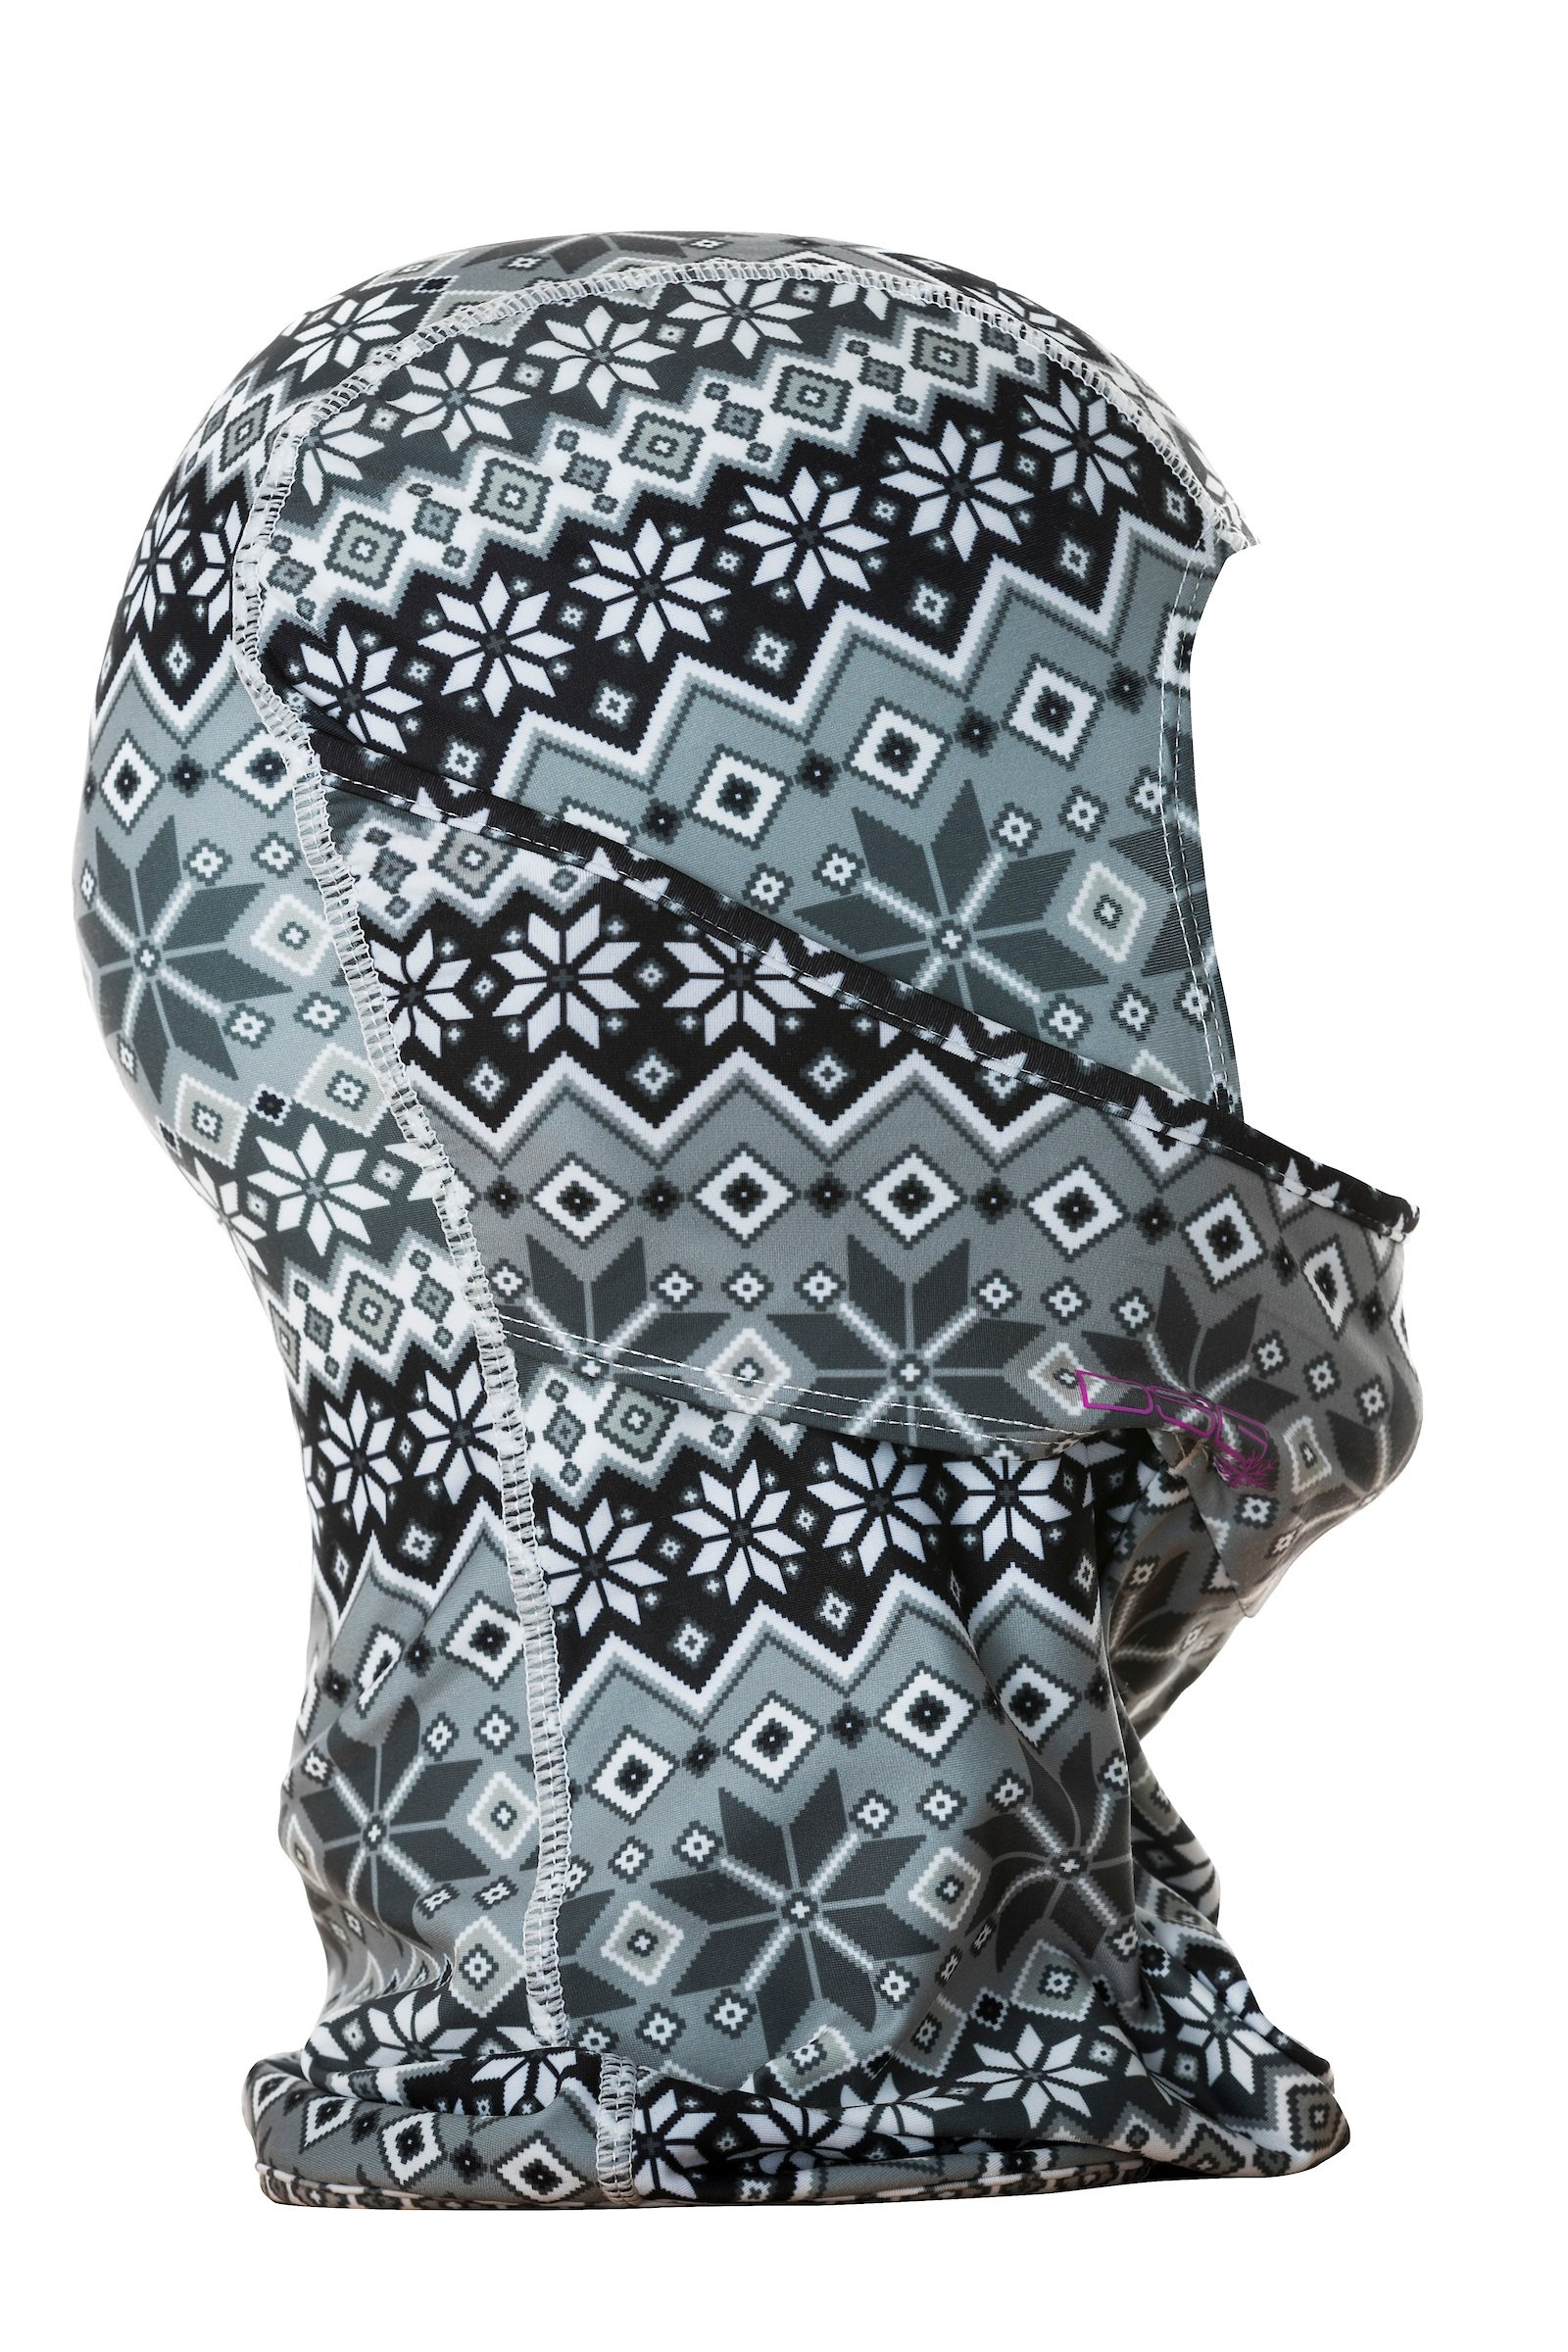 DSG Outerwear Women's Hinged Balaclava - Soft, Hinged Mouth, Moisture Wicking (Nordic Print)